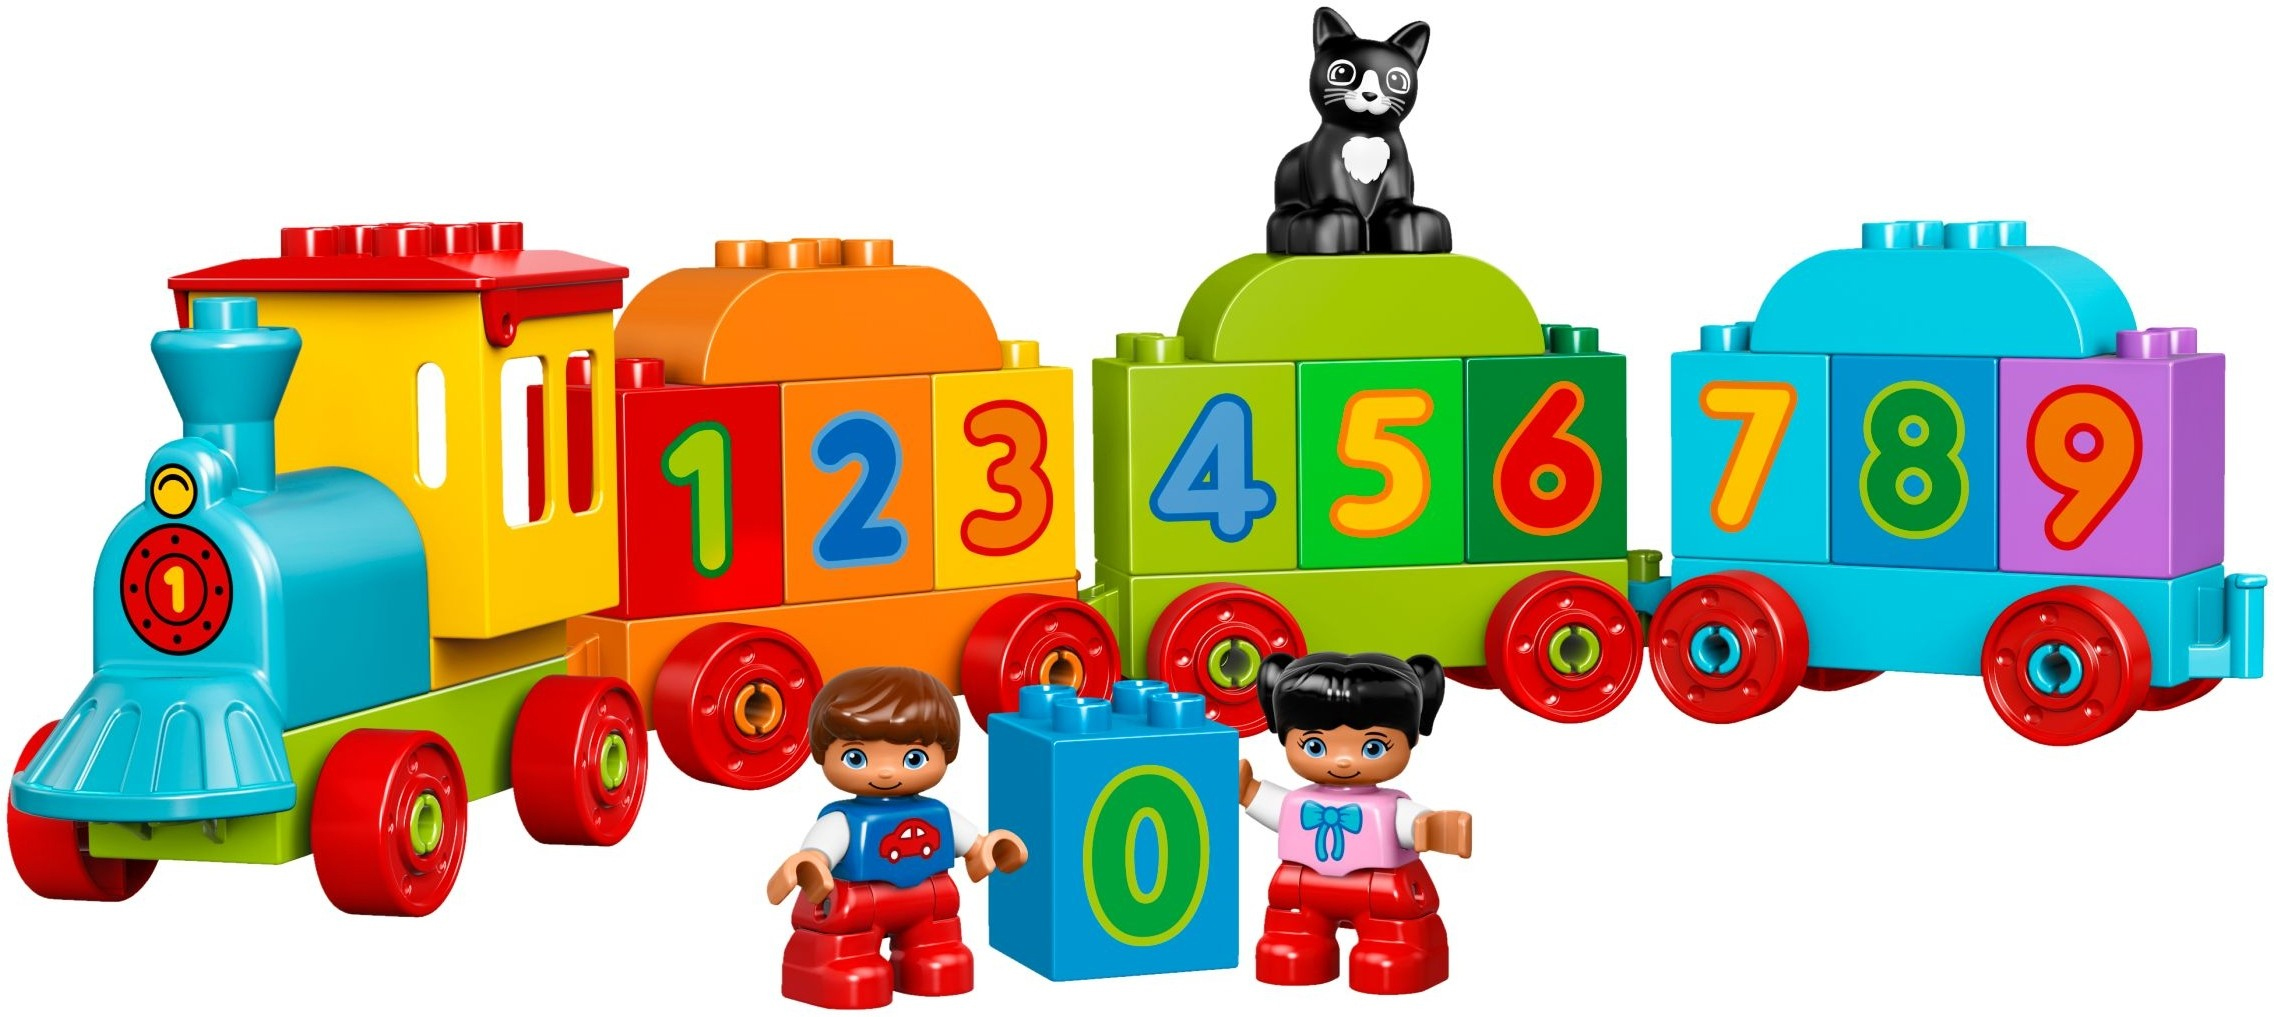 Number clipart train My 10847 My « «